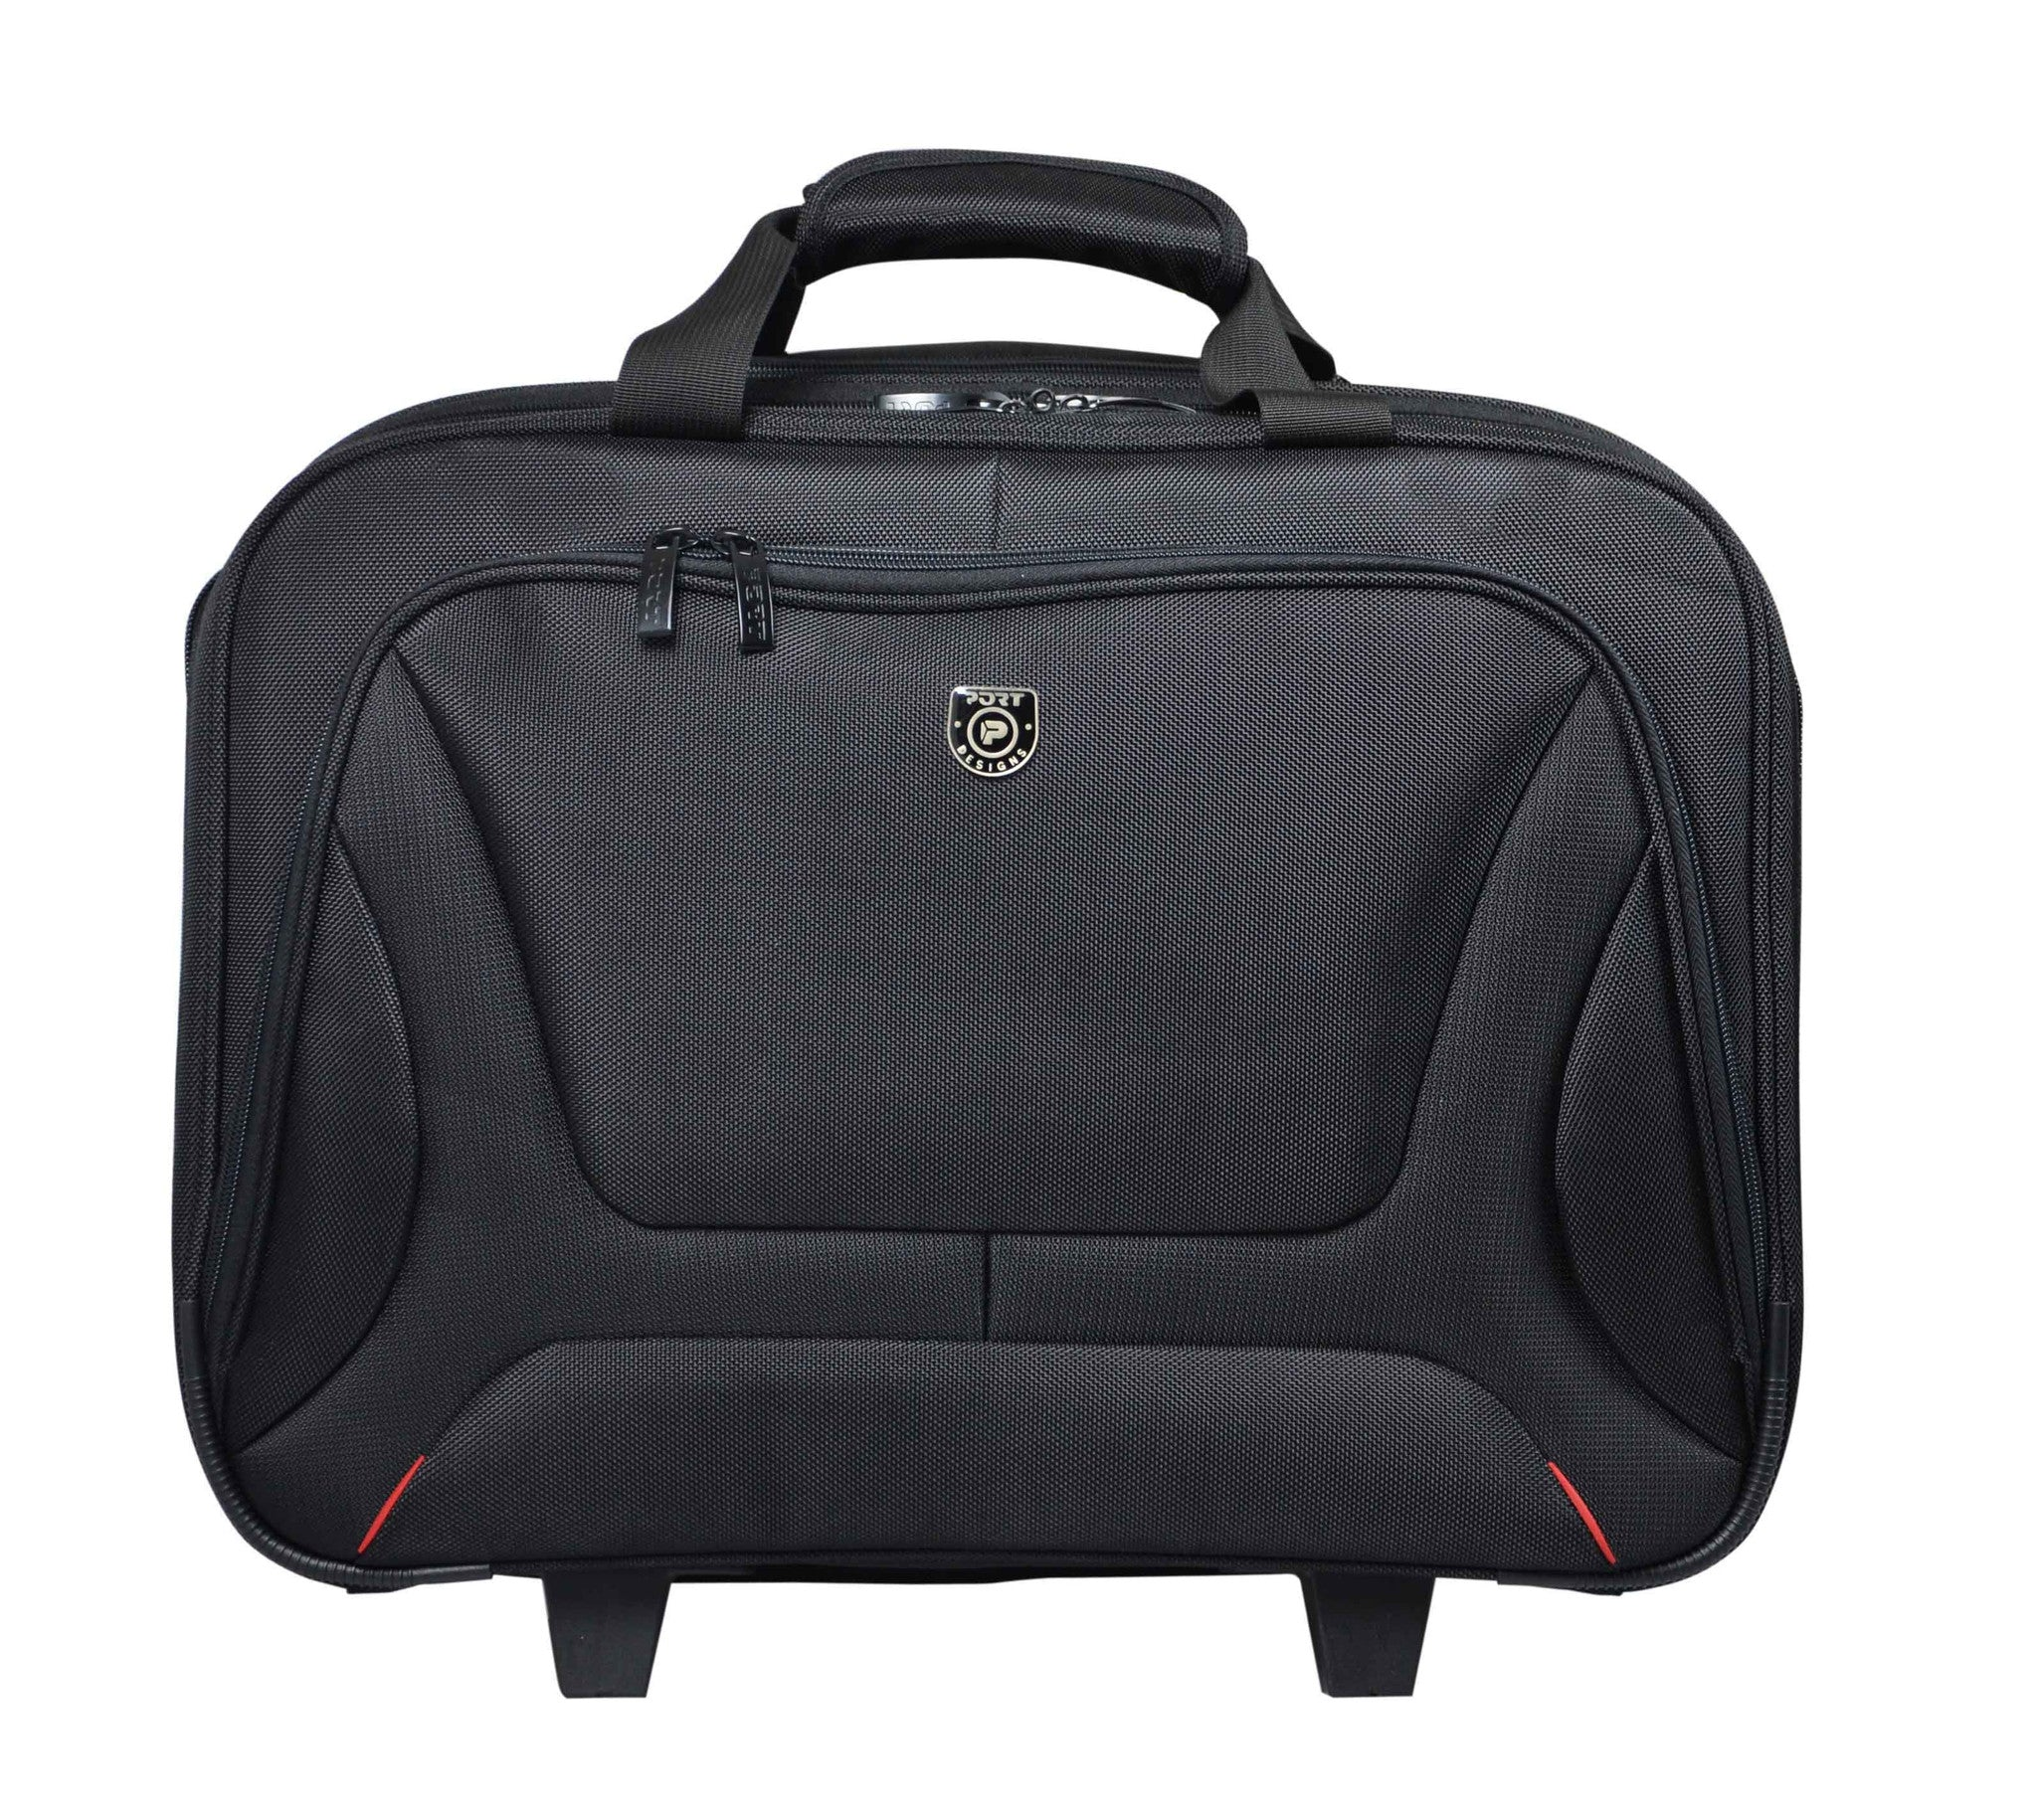 "PORT Designs - Courchevel Trolley/Roller Bag  15.6""- Black, Accessories, Port, BaRRiL - BaRRiL"